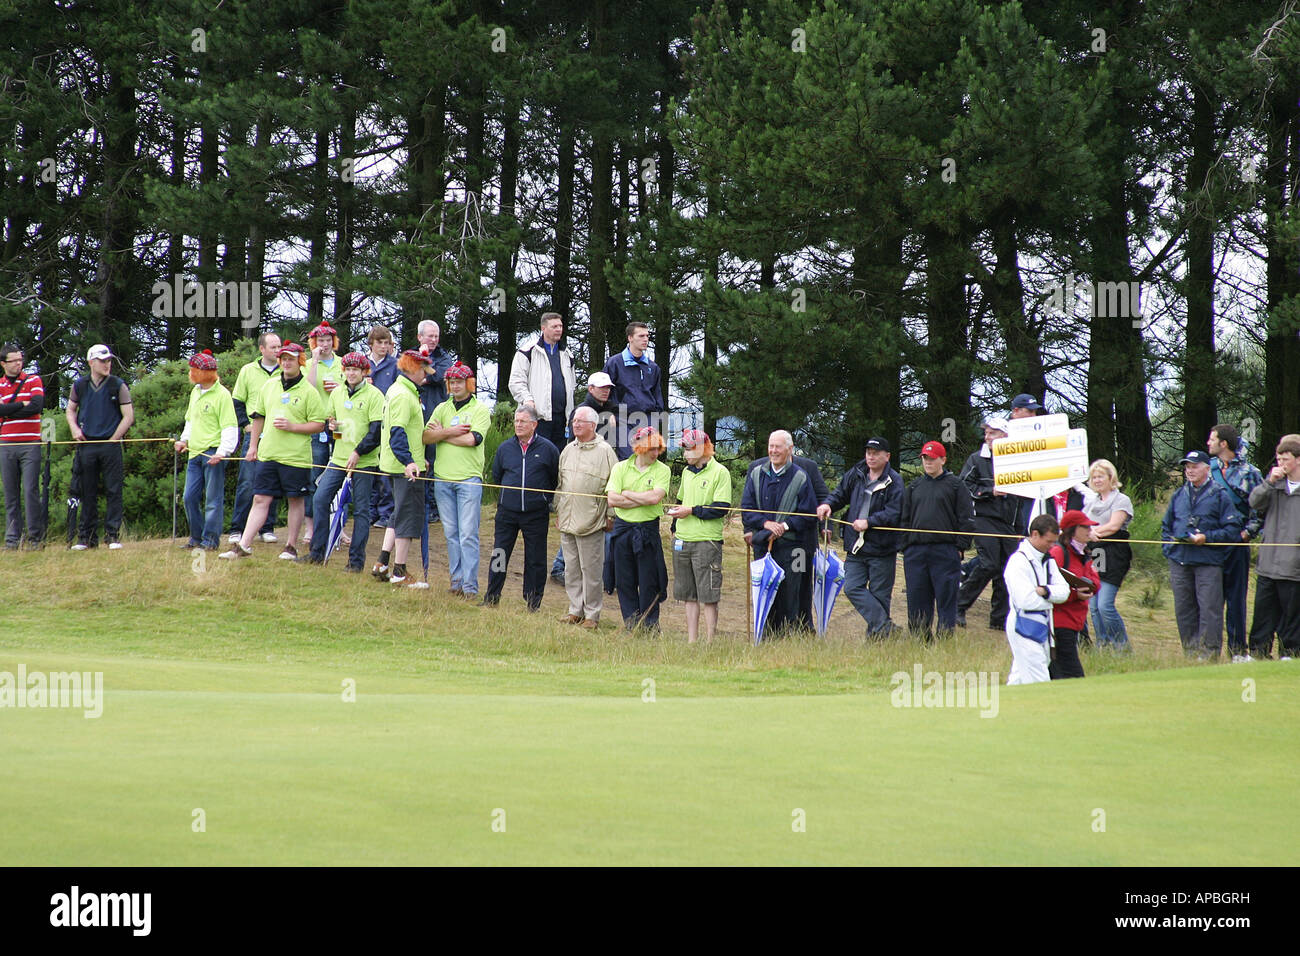 Golf fans at British open golf championship 2007 Carnoustie - Stock Image